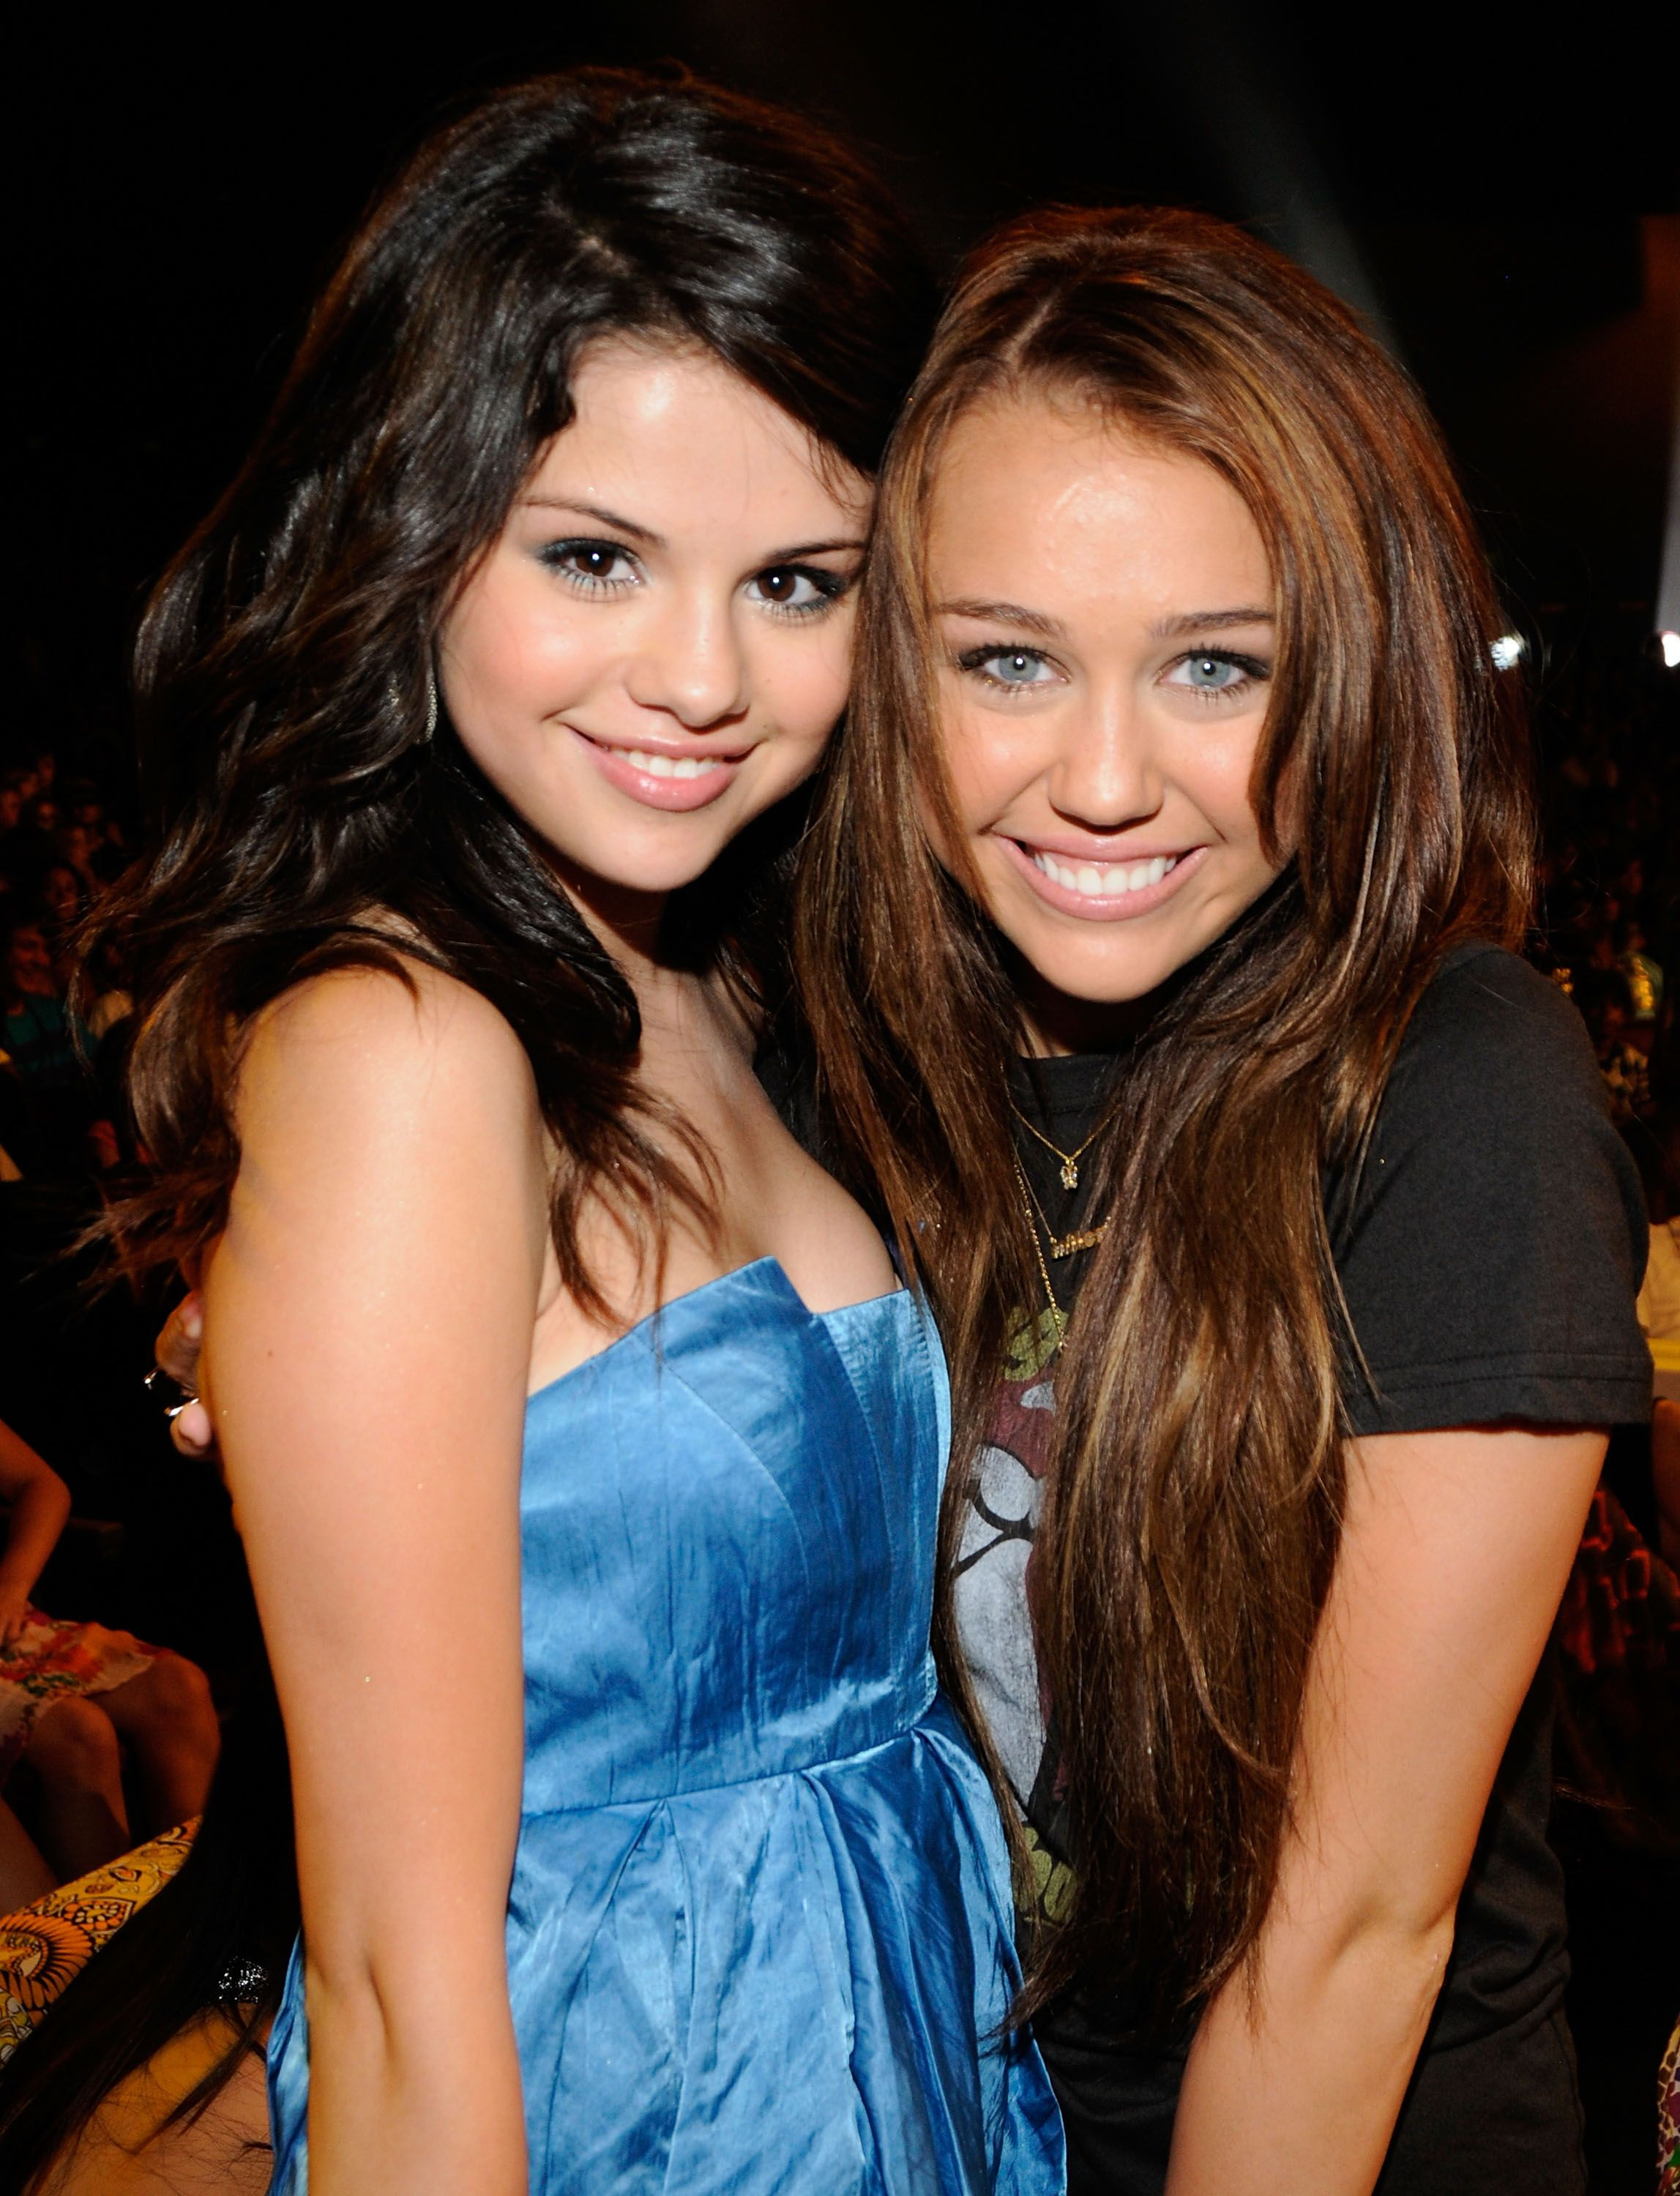 A throwback photo of Miley Cyrus and Selena Gomez.